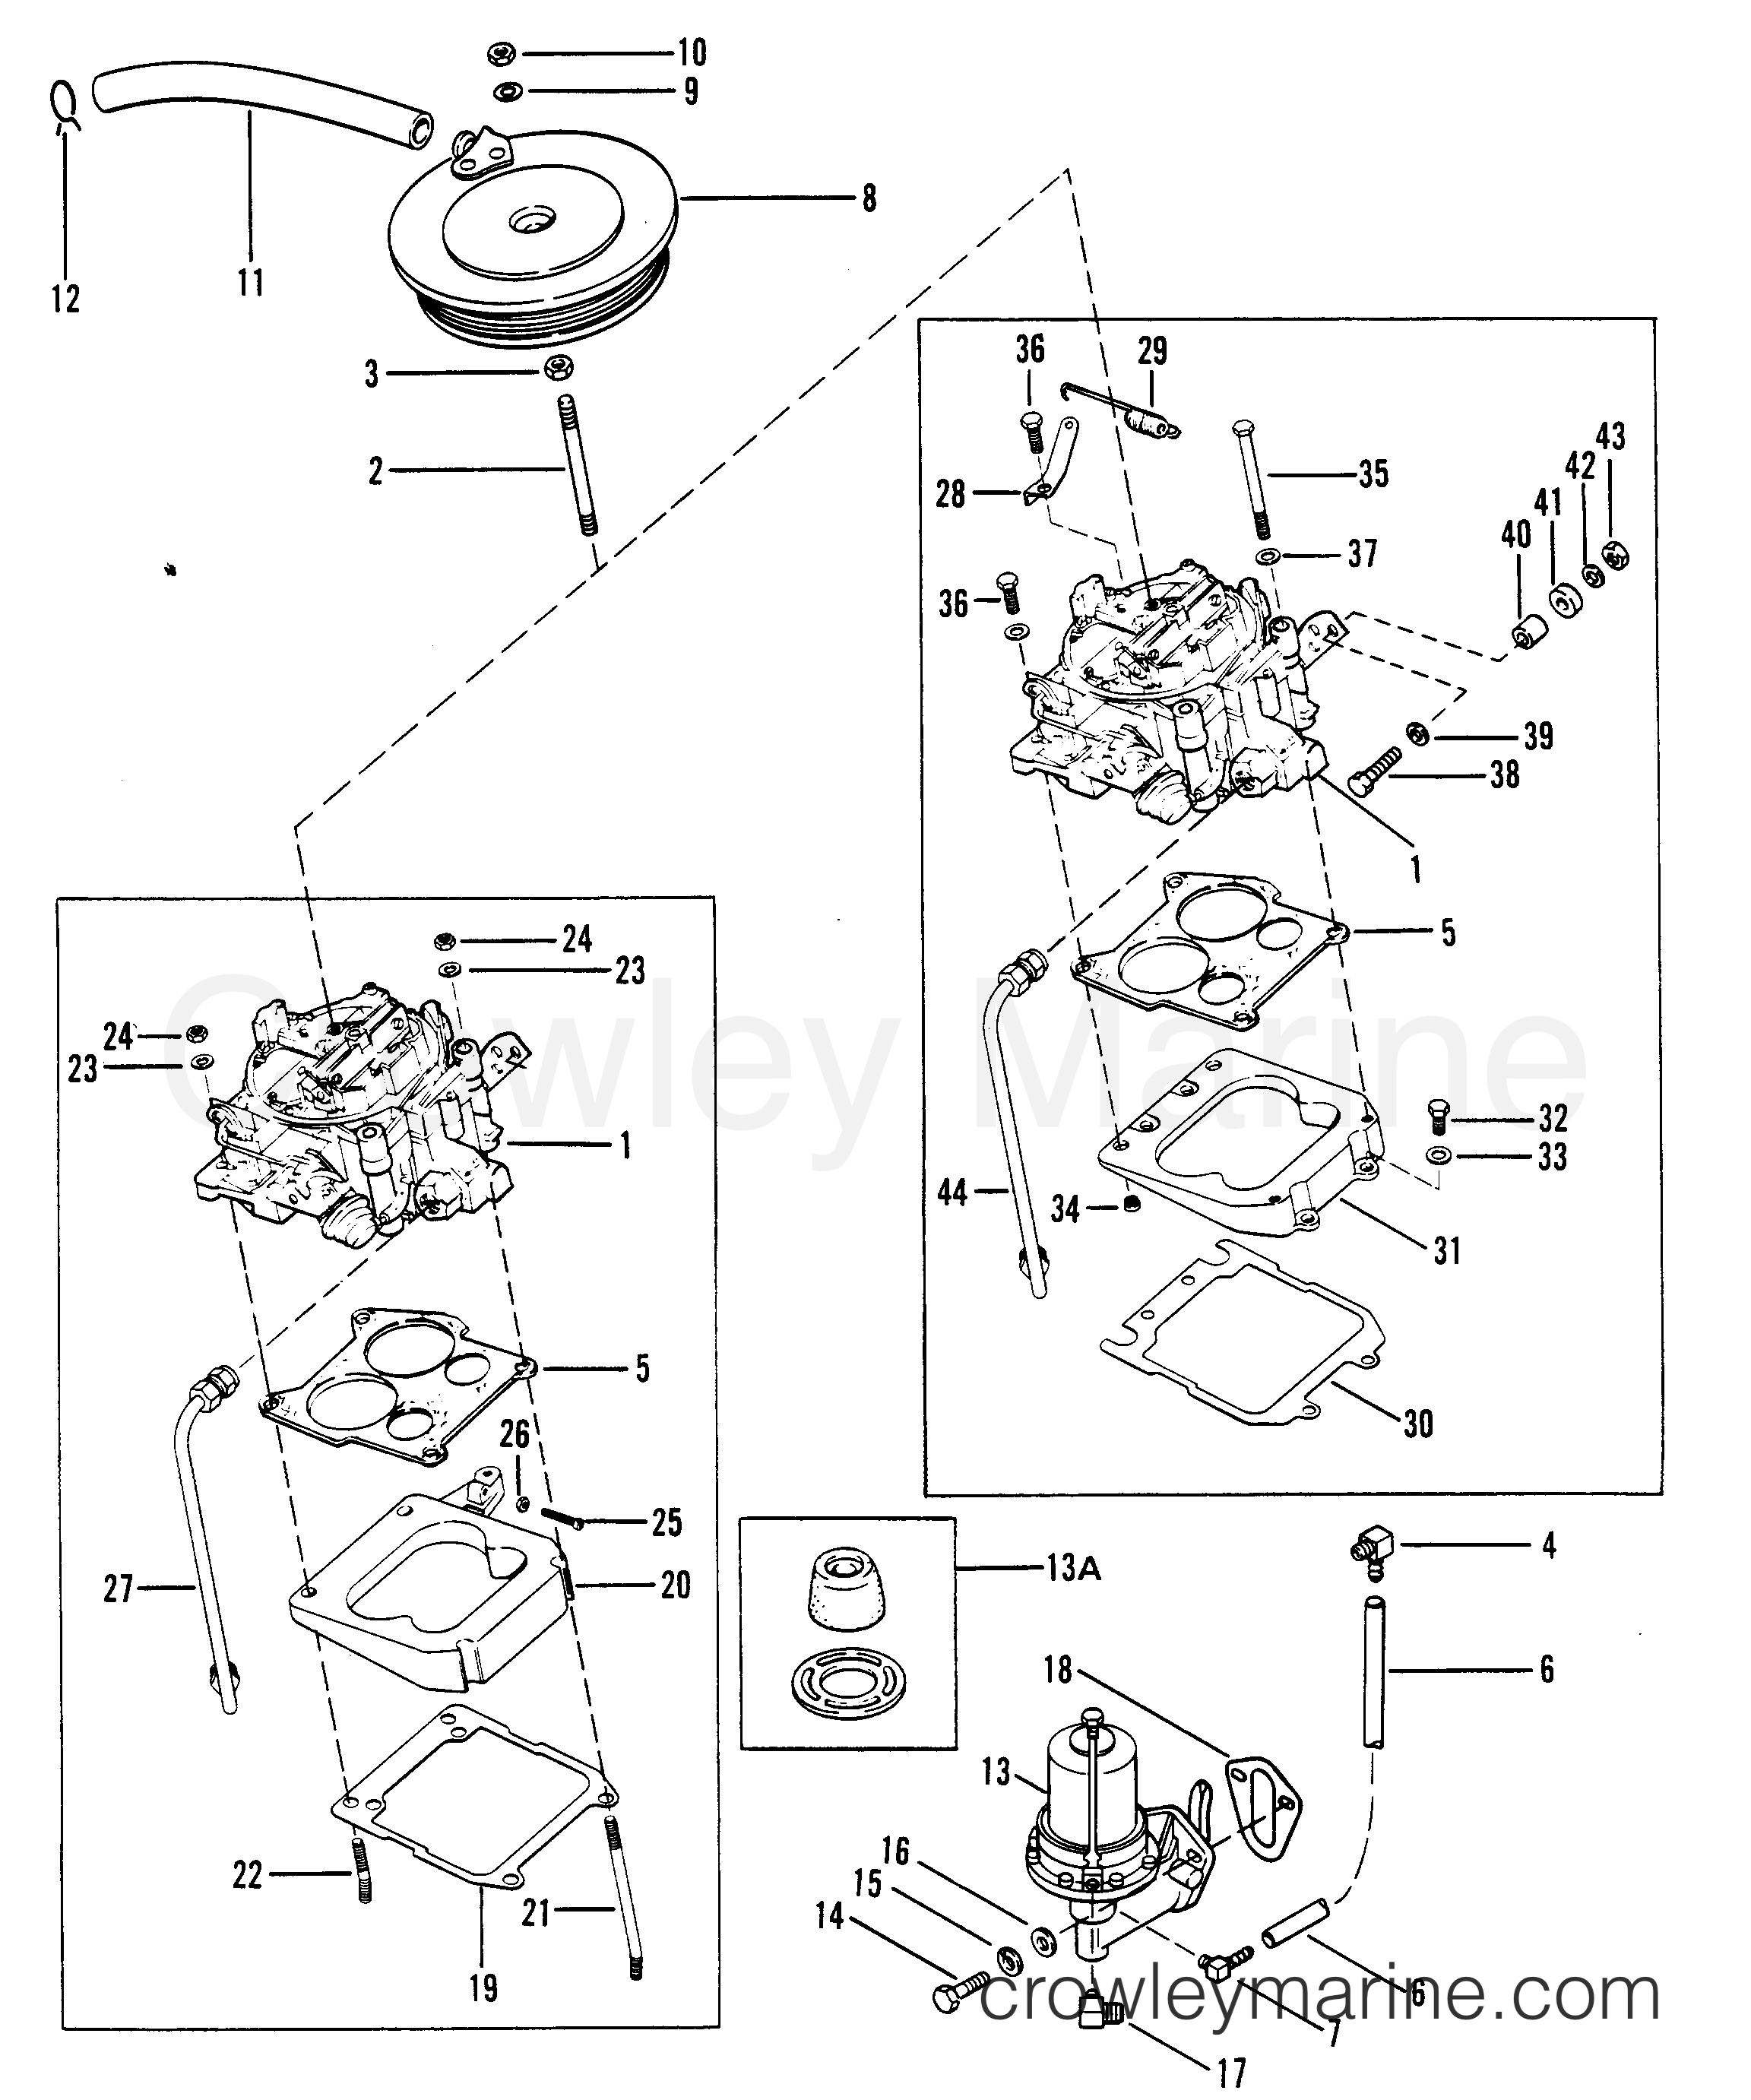 488 Mercruiser Wire Diagram Trusted Wiring Diagrams Mercury 140 Hp Parts Illustration Of U2022